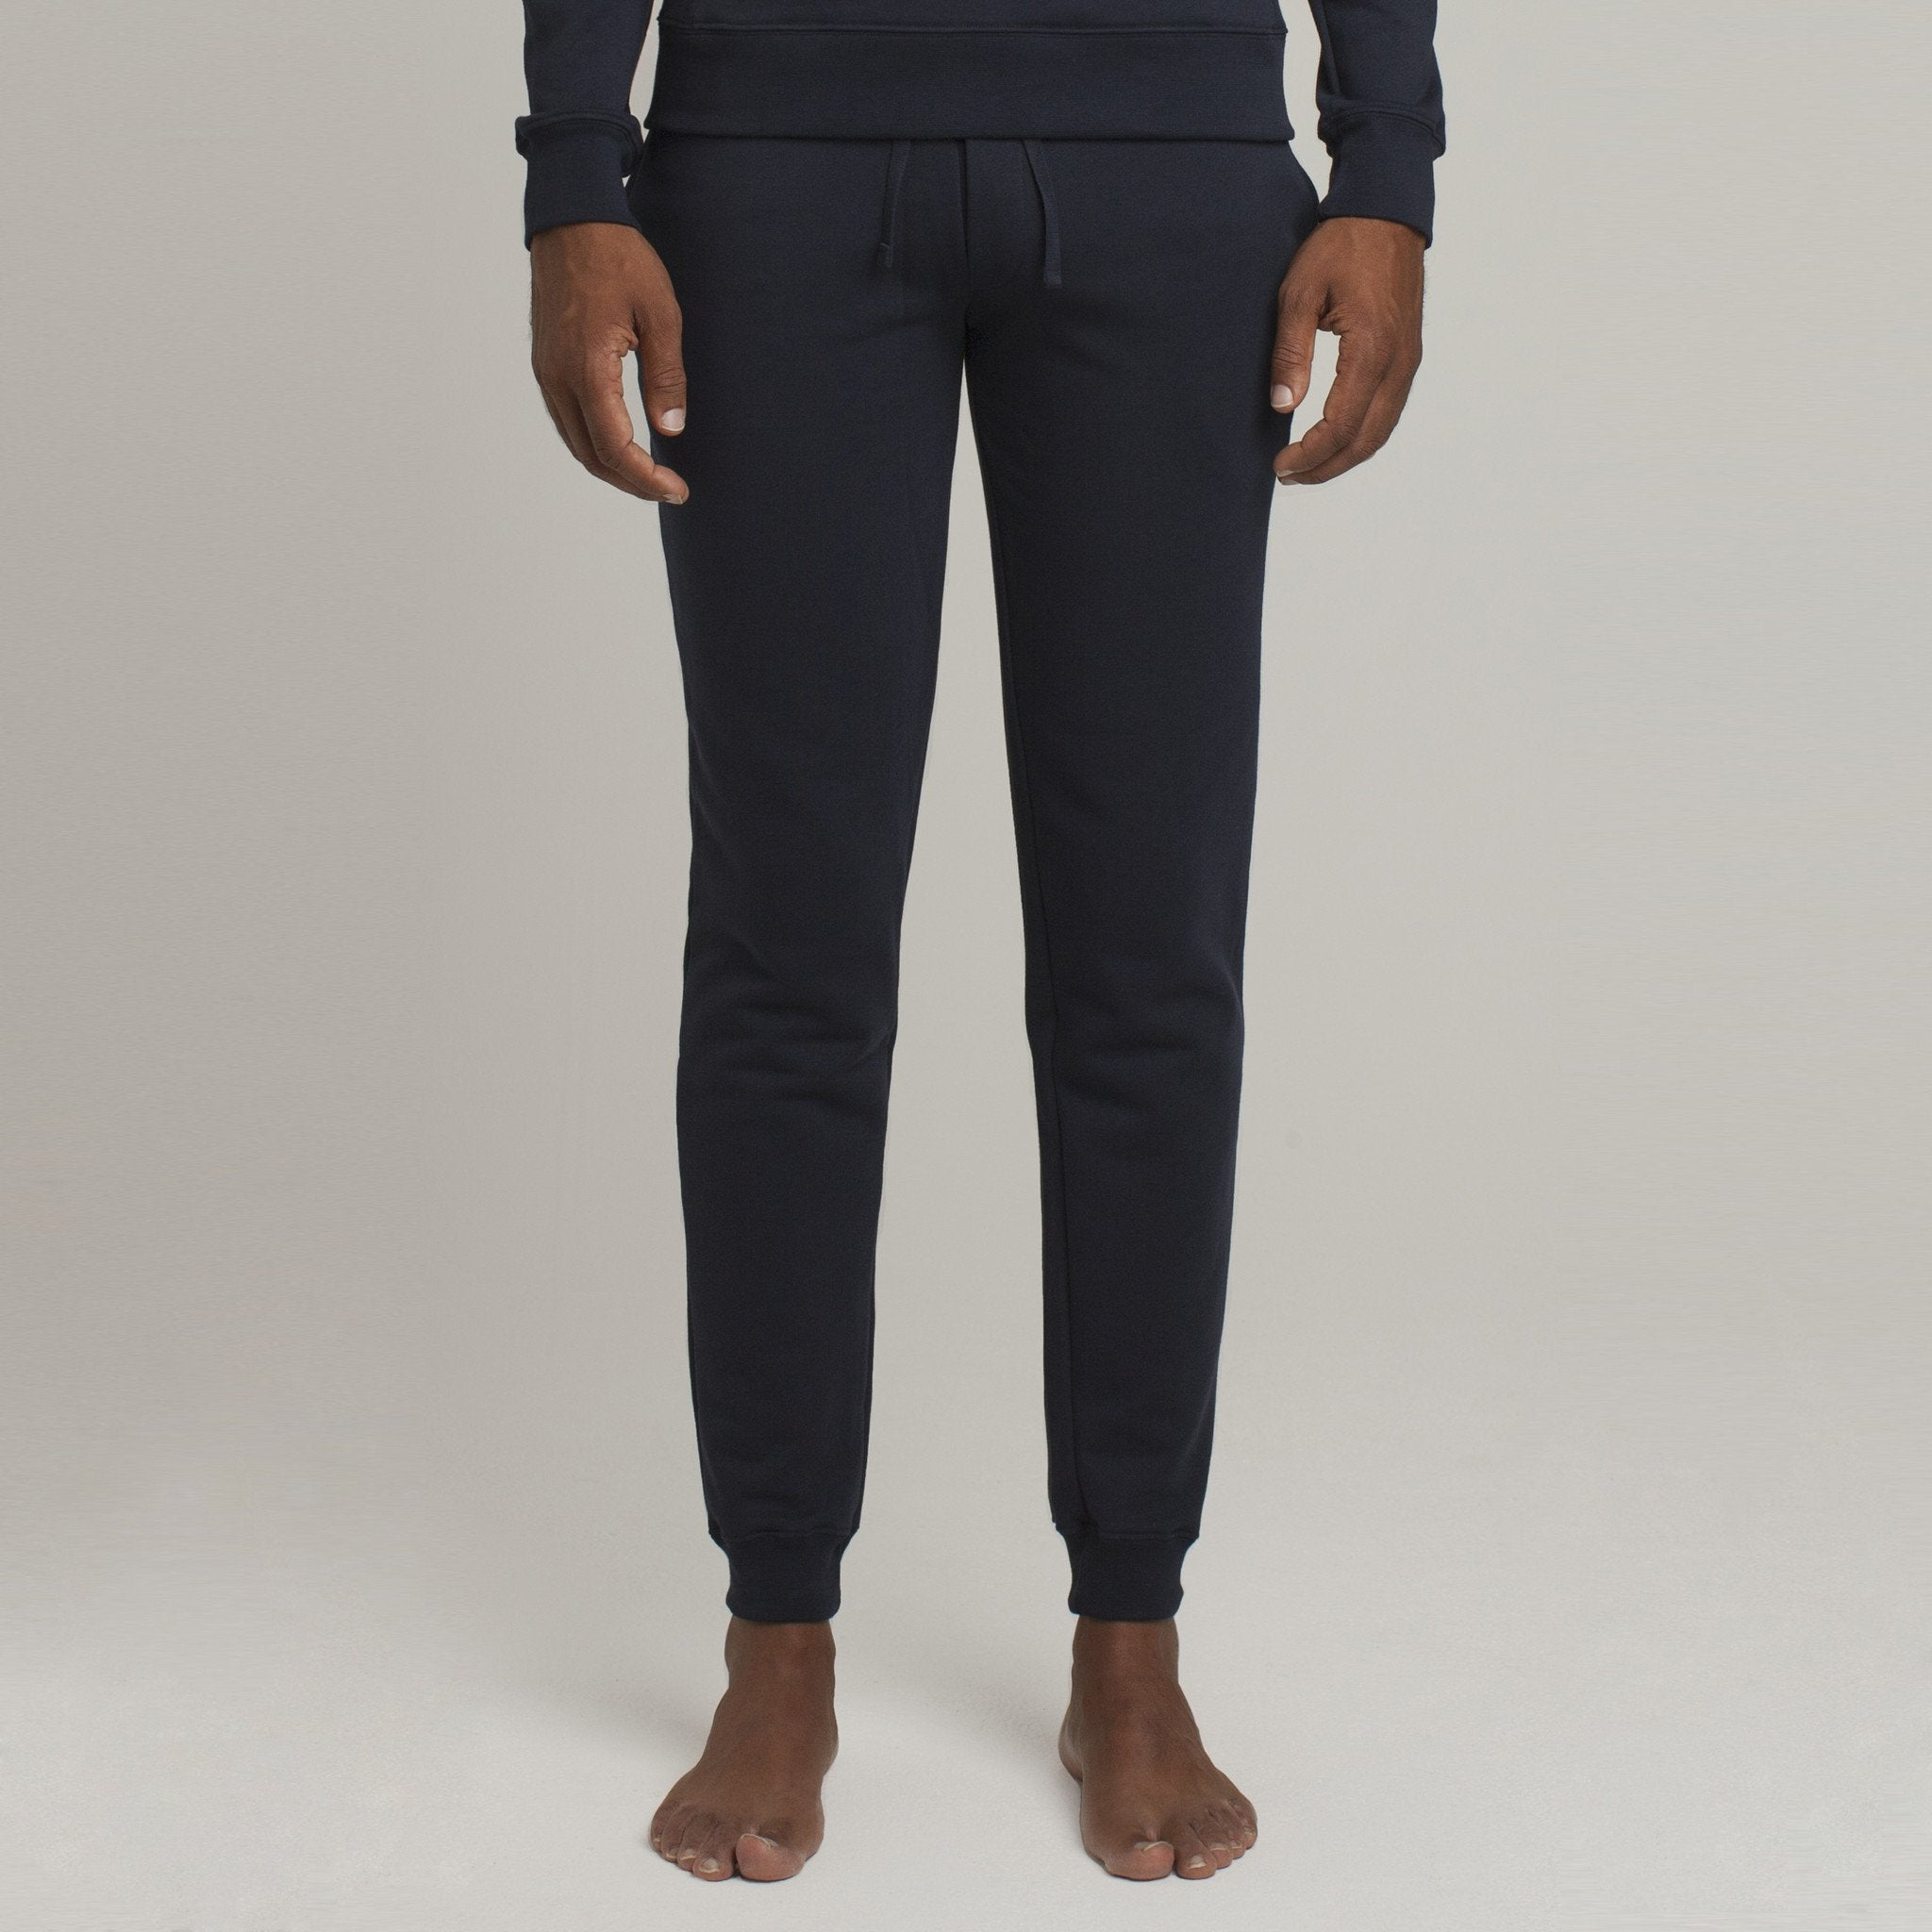 Mens Loungewear - Men's Barrow Loop Terry Sweatpants - Dark Blue⎪Etiquette Clothiers